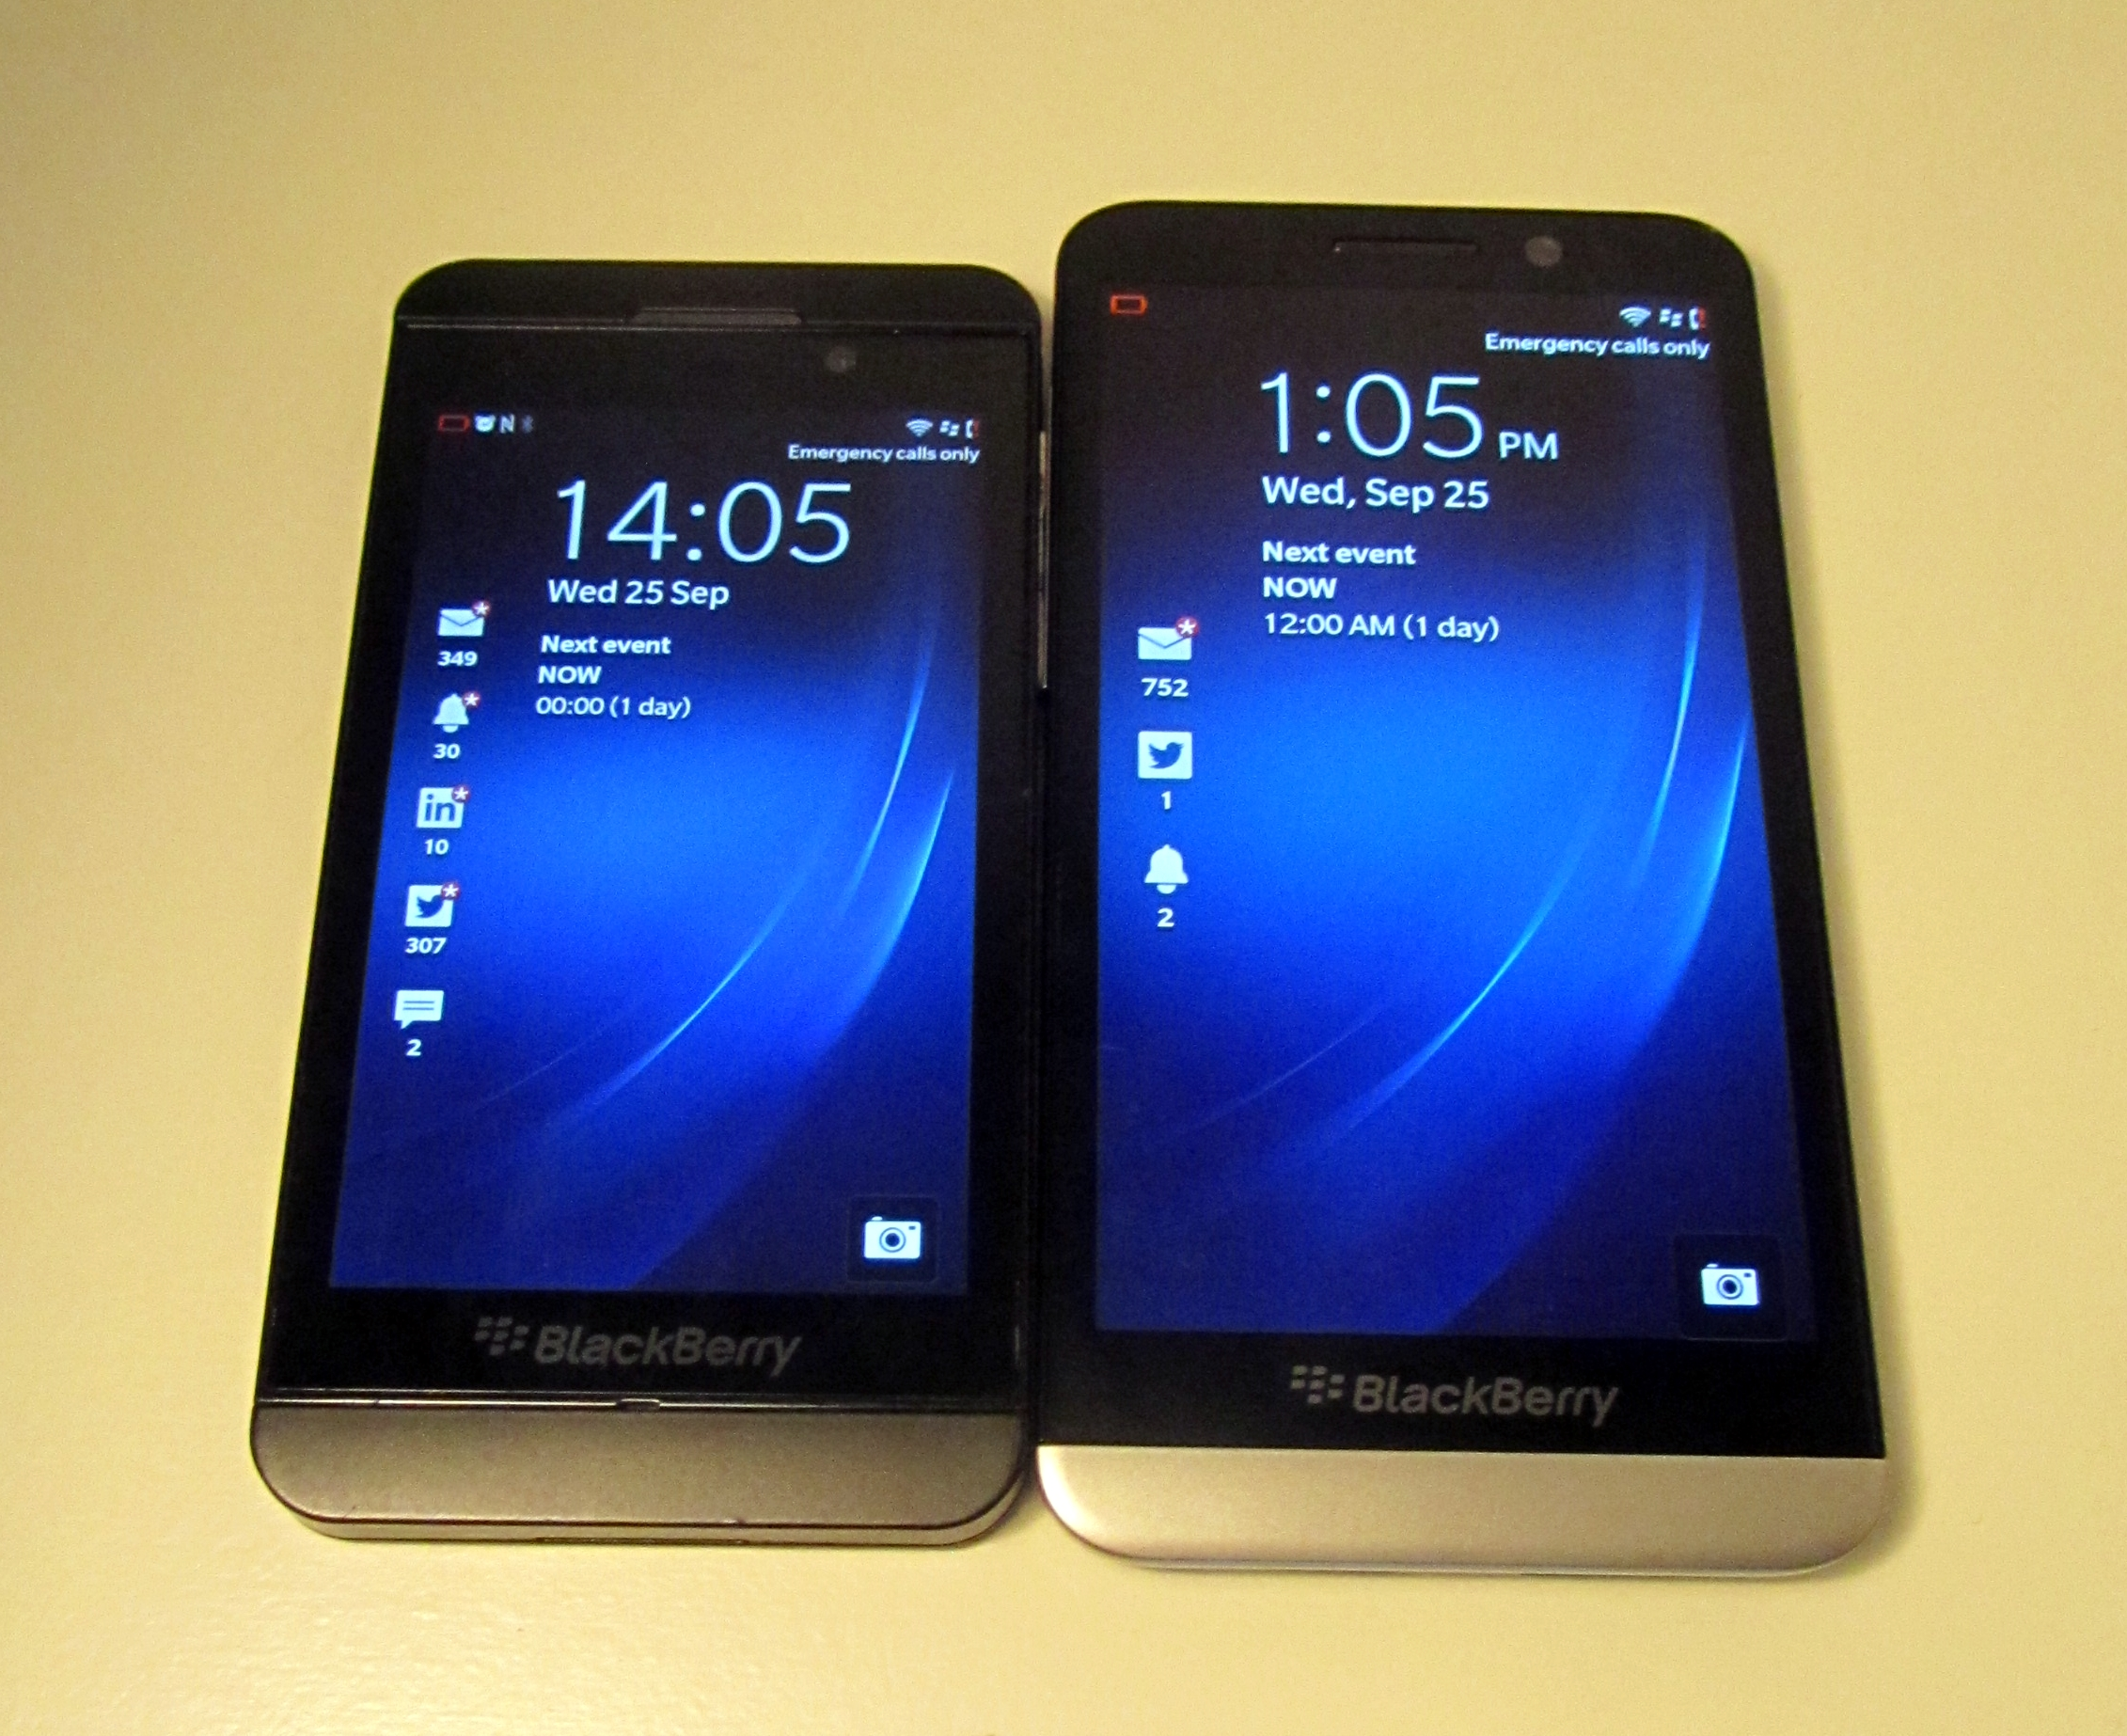 BlackBerryZ10 BlackBerryZ30 BlackBerrys new Z30 flagship smartphone: Hands on first impressions